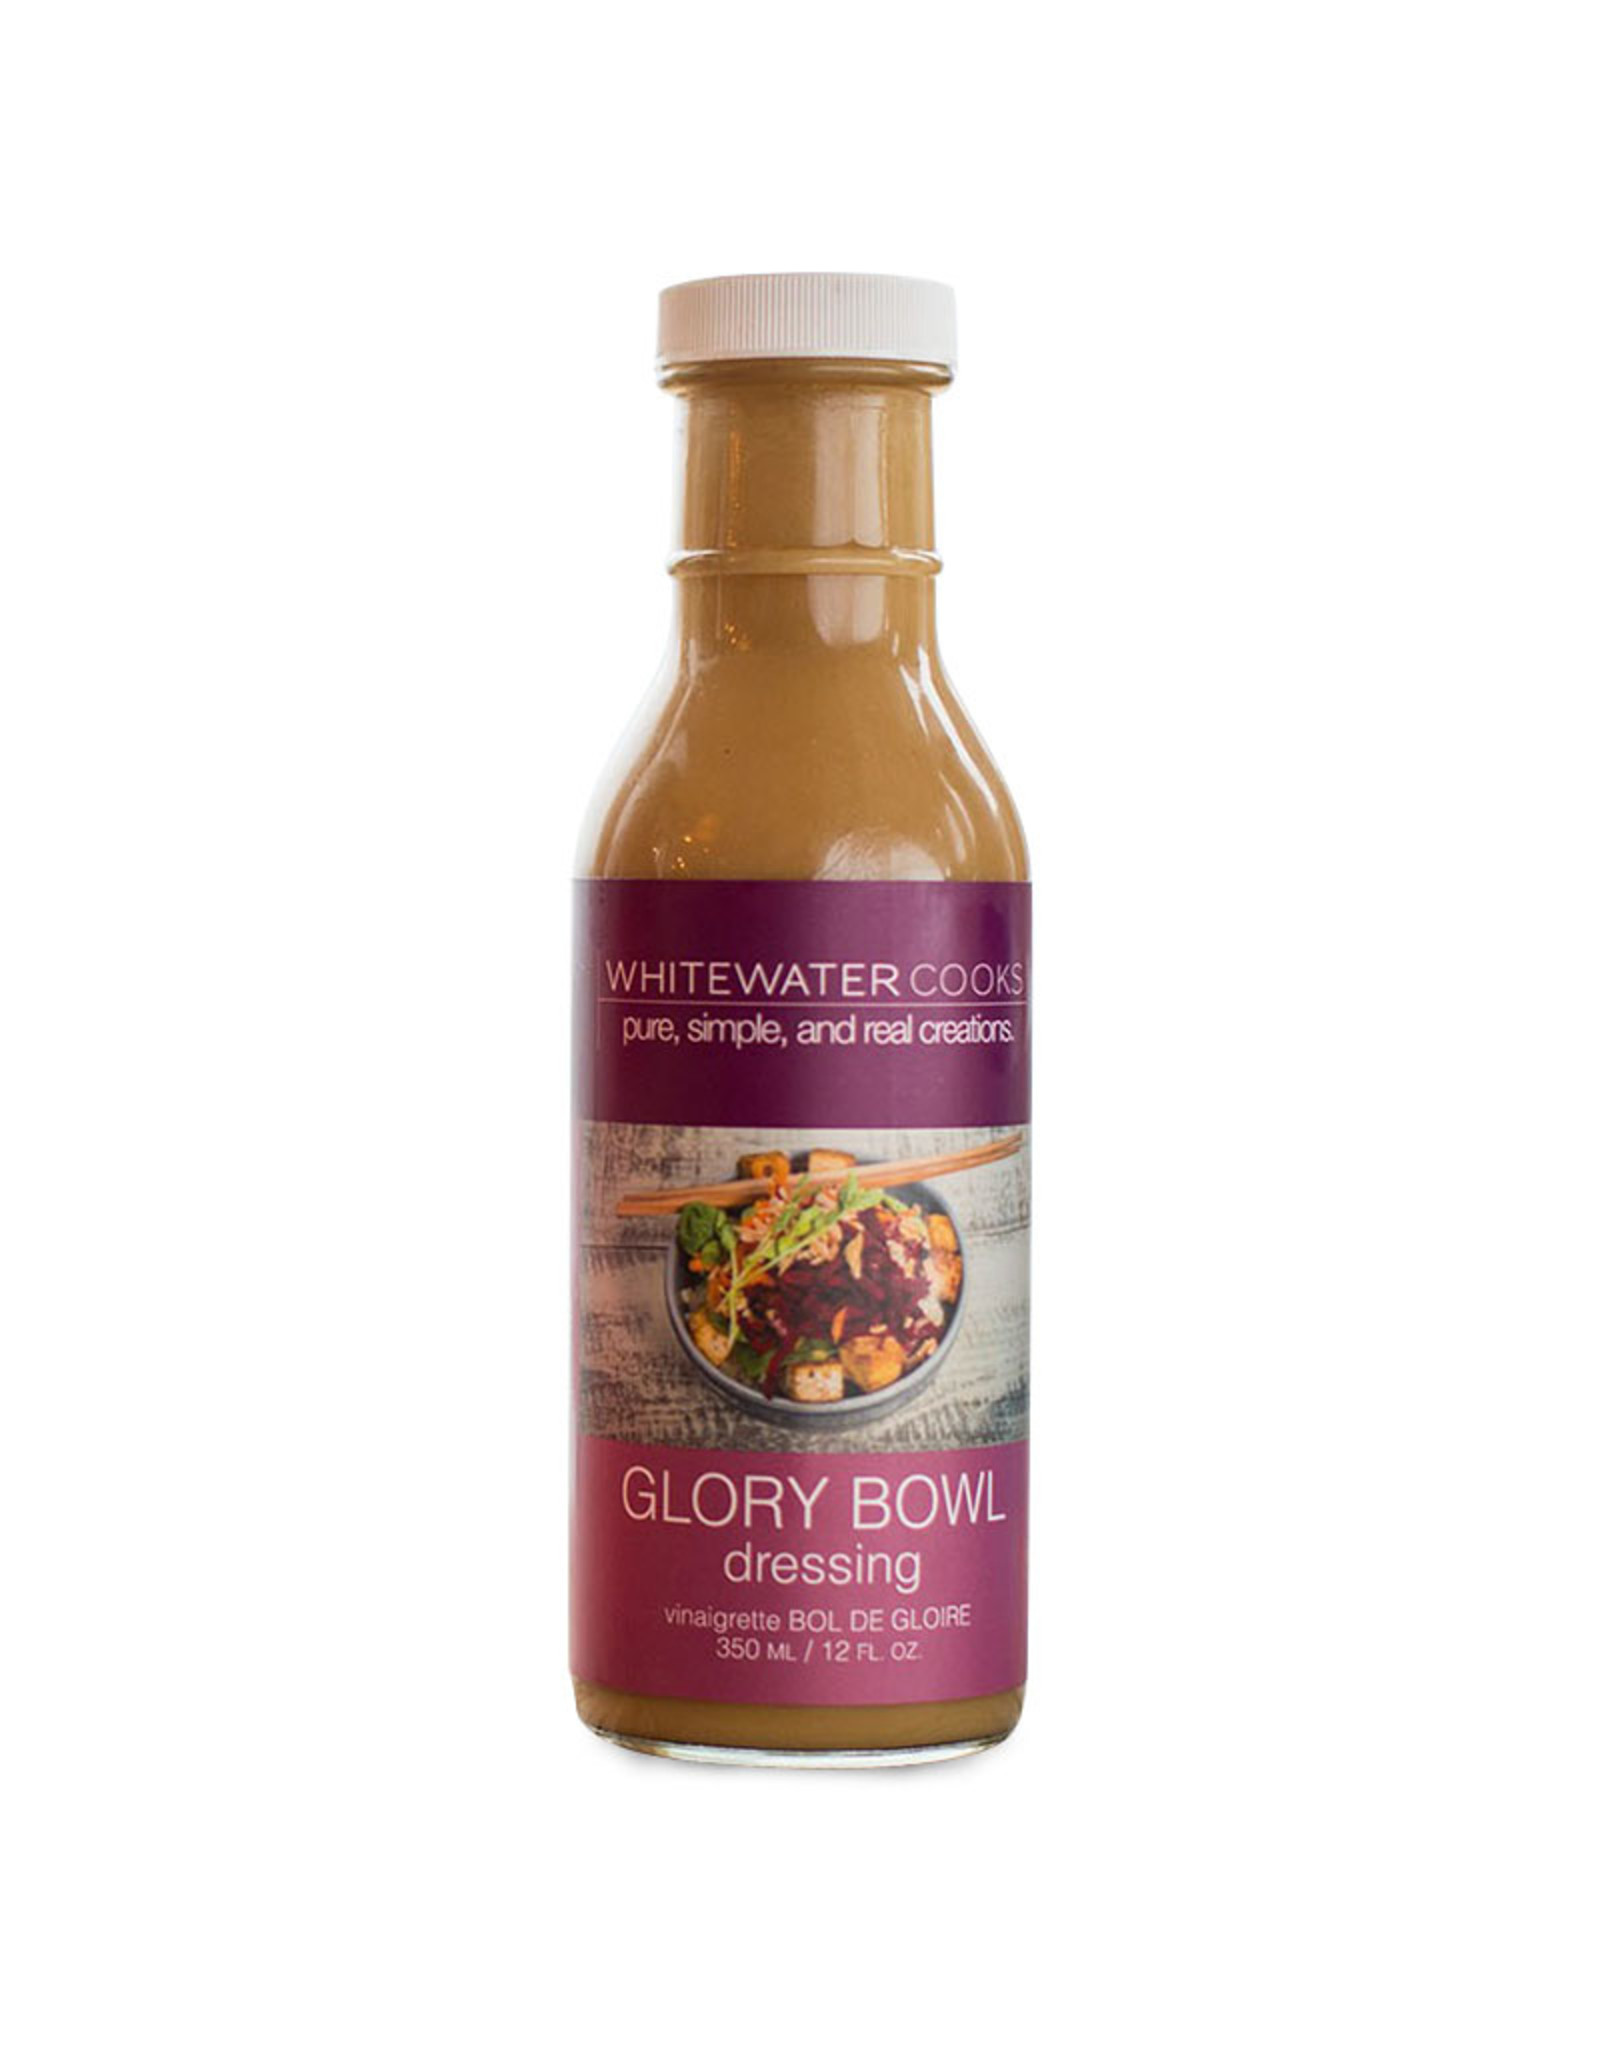 Whitewater Cooks Whitewater Cooks - Dressing, Glory Bowl (350ml)